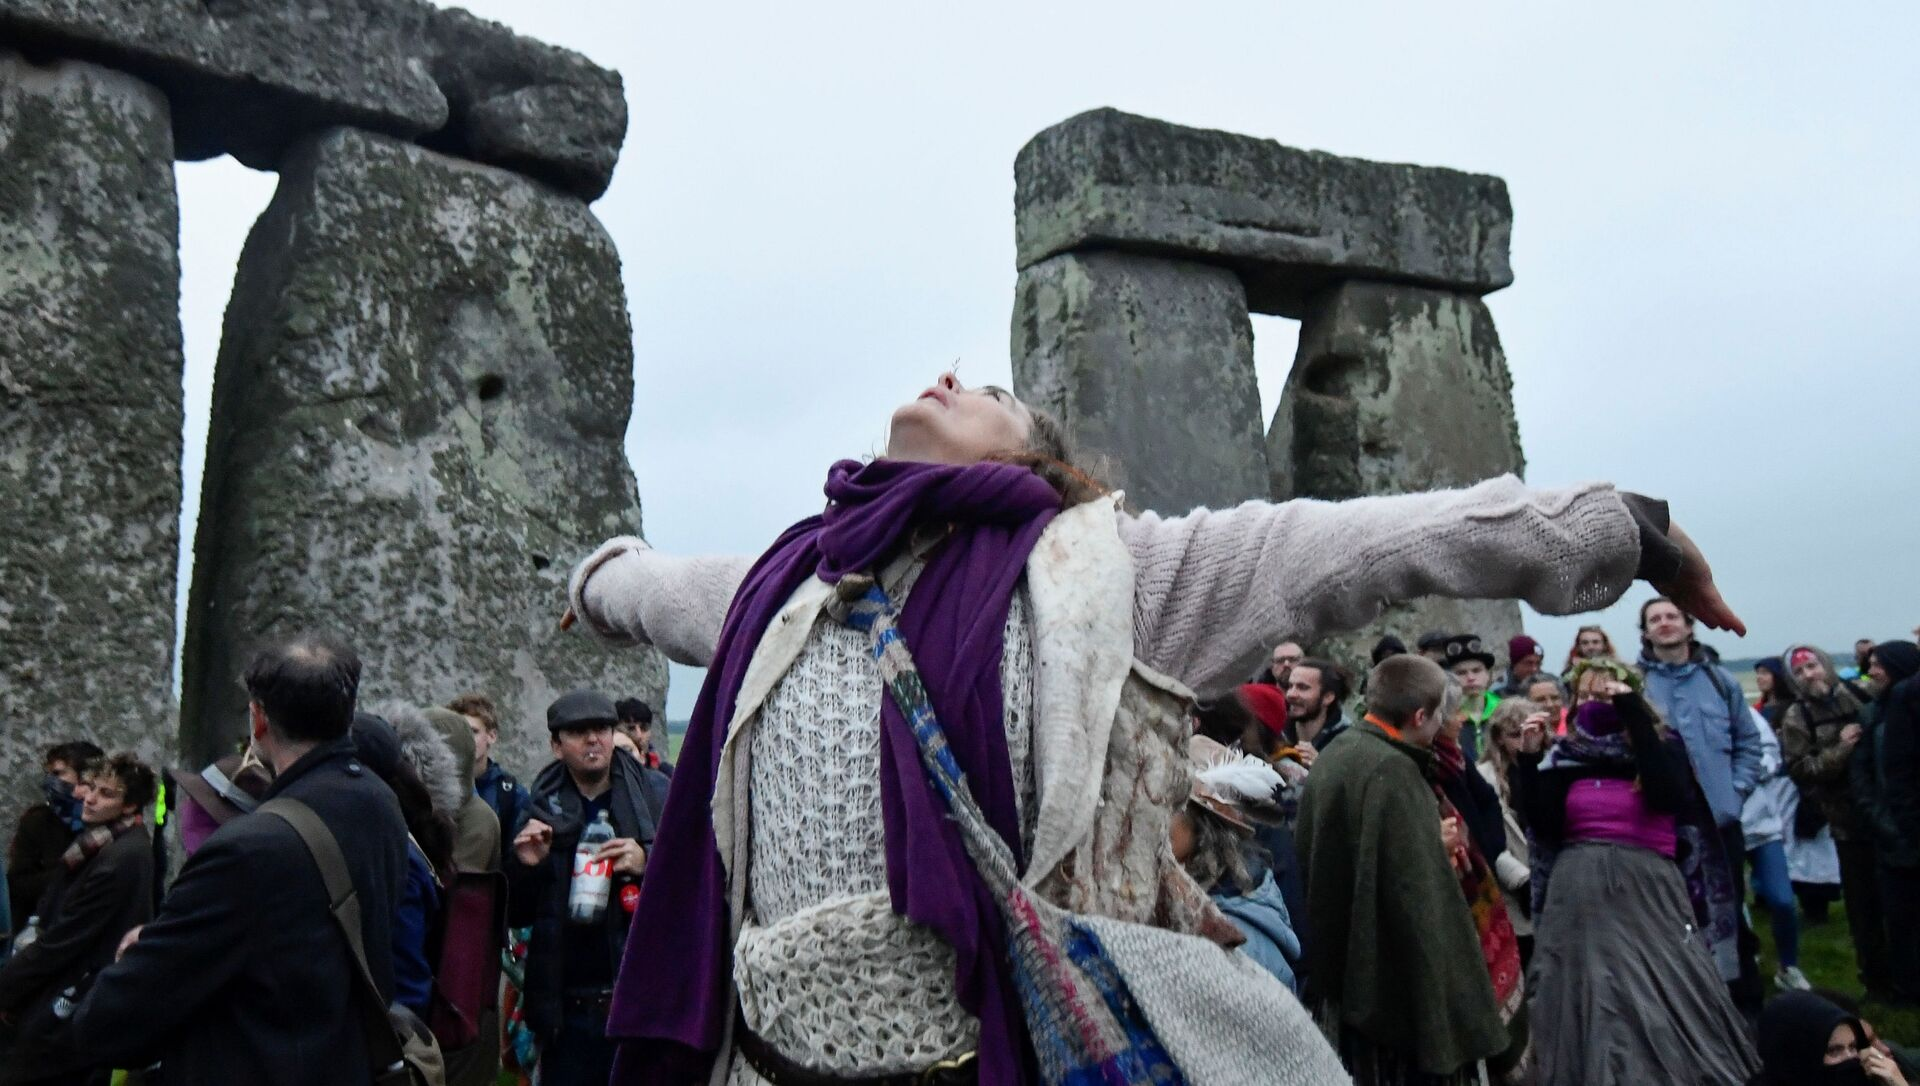 A person looks up as she attends the celebration of the Summer Solstice at Stonehenge ancient stone circle, despite official events being cancelled amid the spread of the coronavirus disease (COVID-19), near Amesbury, Britain, June 21, 2021 - Sputnik International, 1920, 30.07.2021